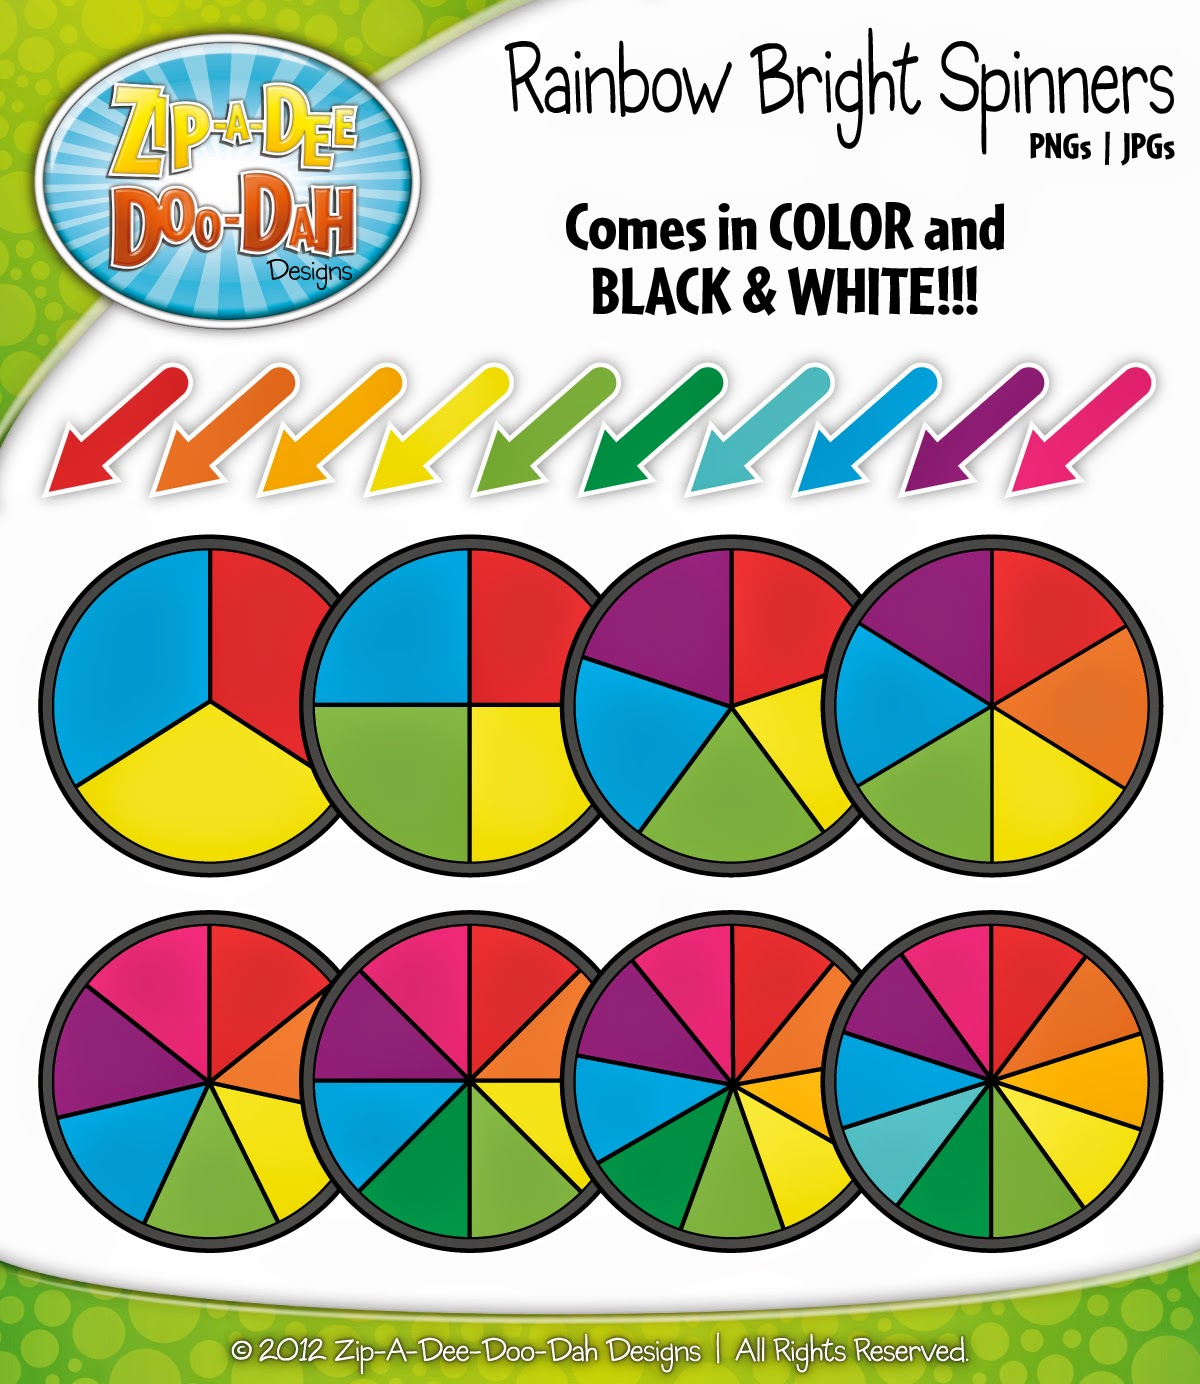 http://www.teacherspayteachers.com/Product/Rainbow-Bright-Spinners-Clipart-Mega-Set-Over-40-Graphics-549900